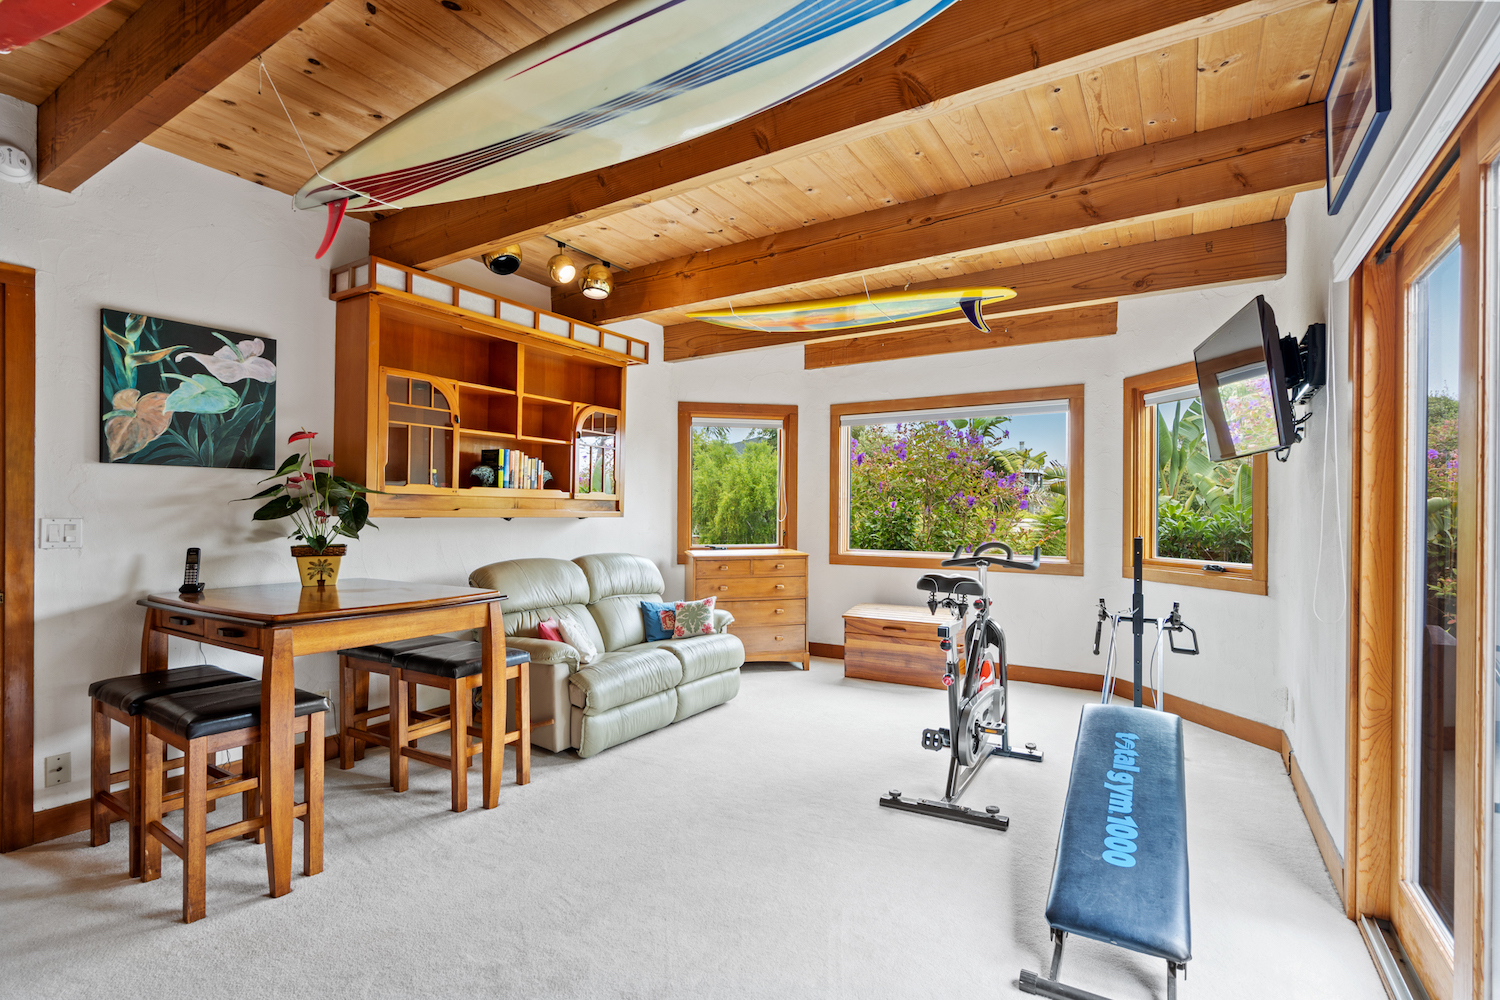 127 bethany curve - exercise room